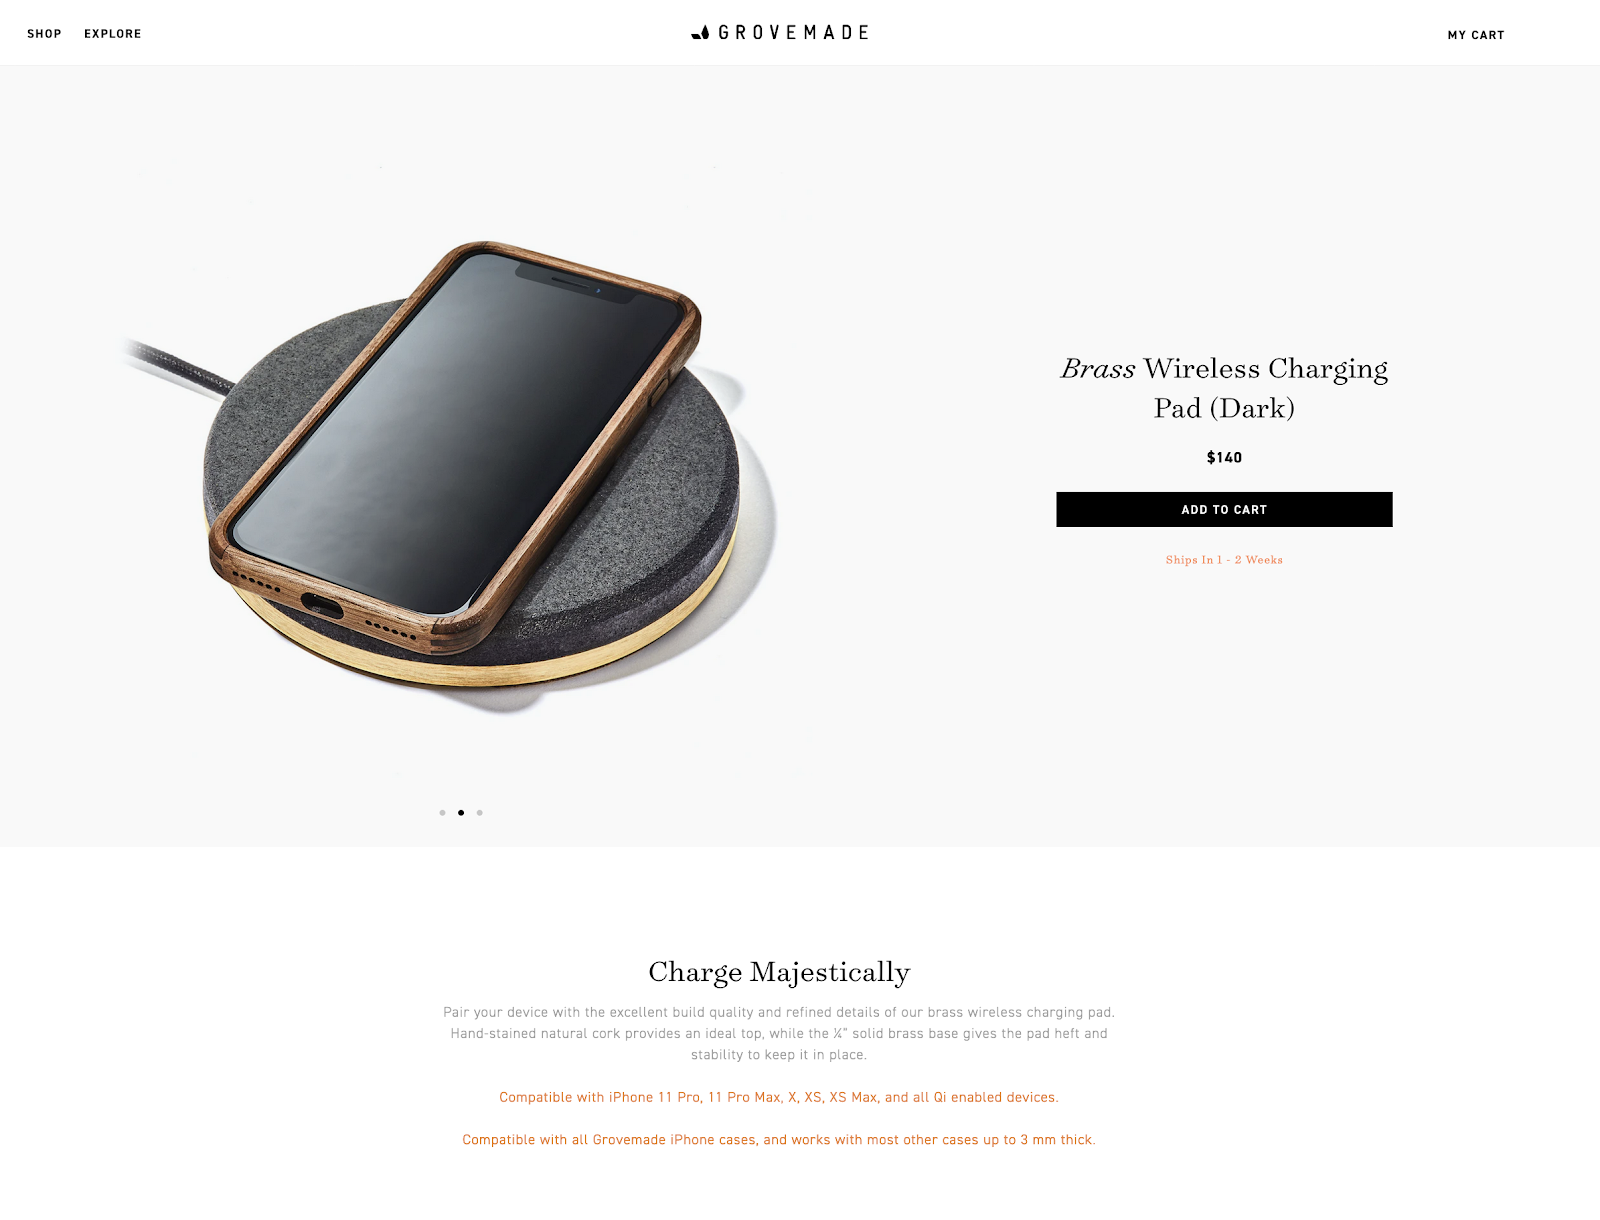 Product page for a wireless charging pad on the Grovemade website